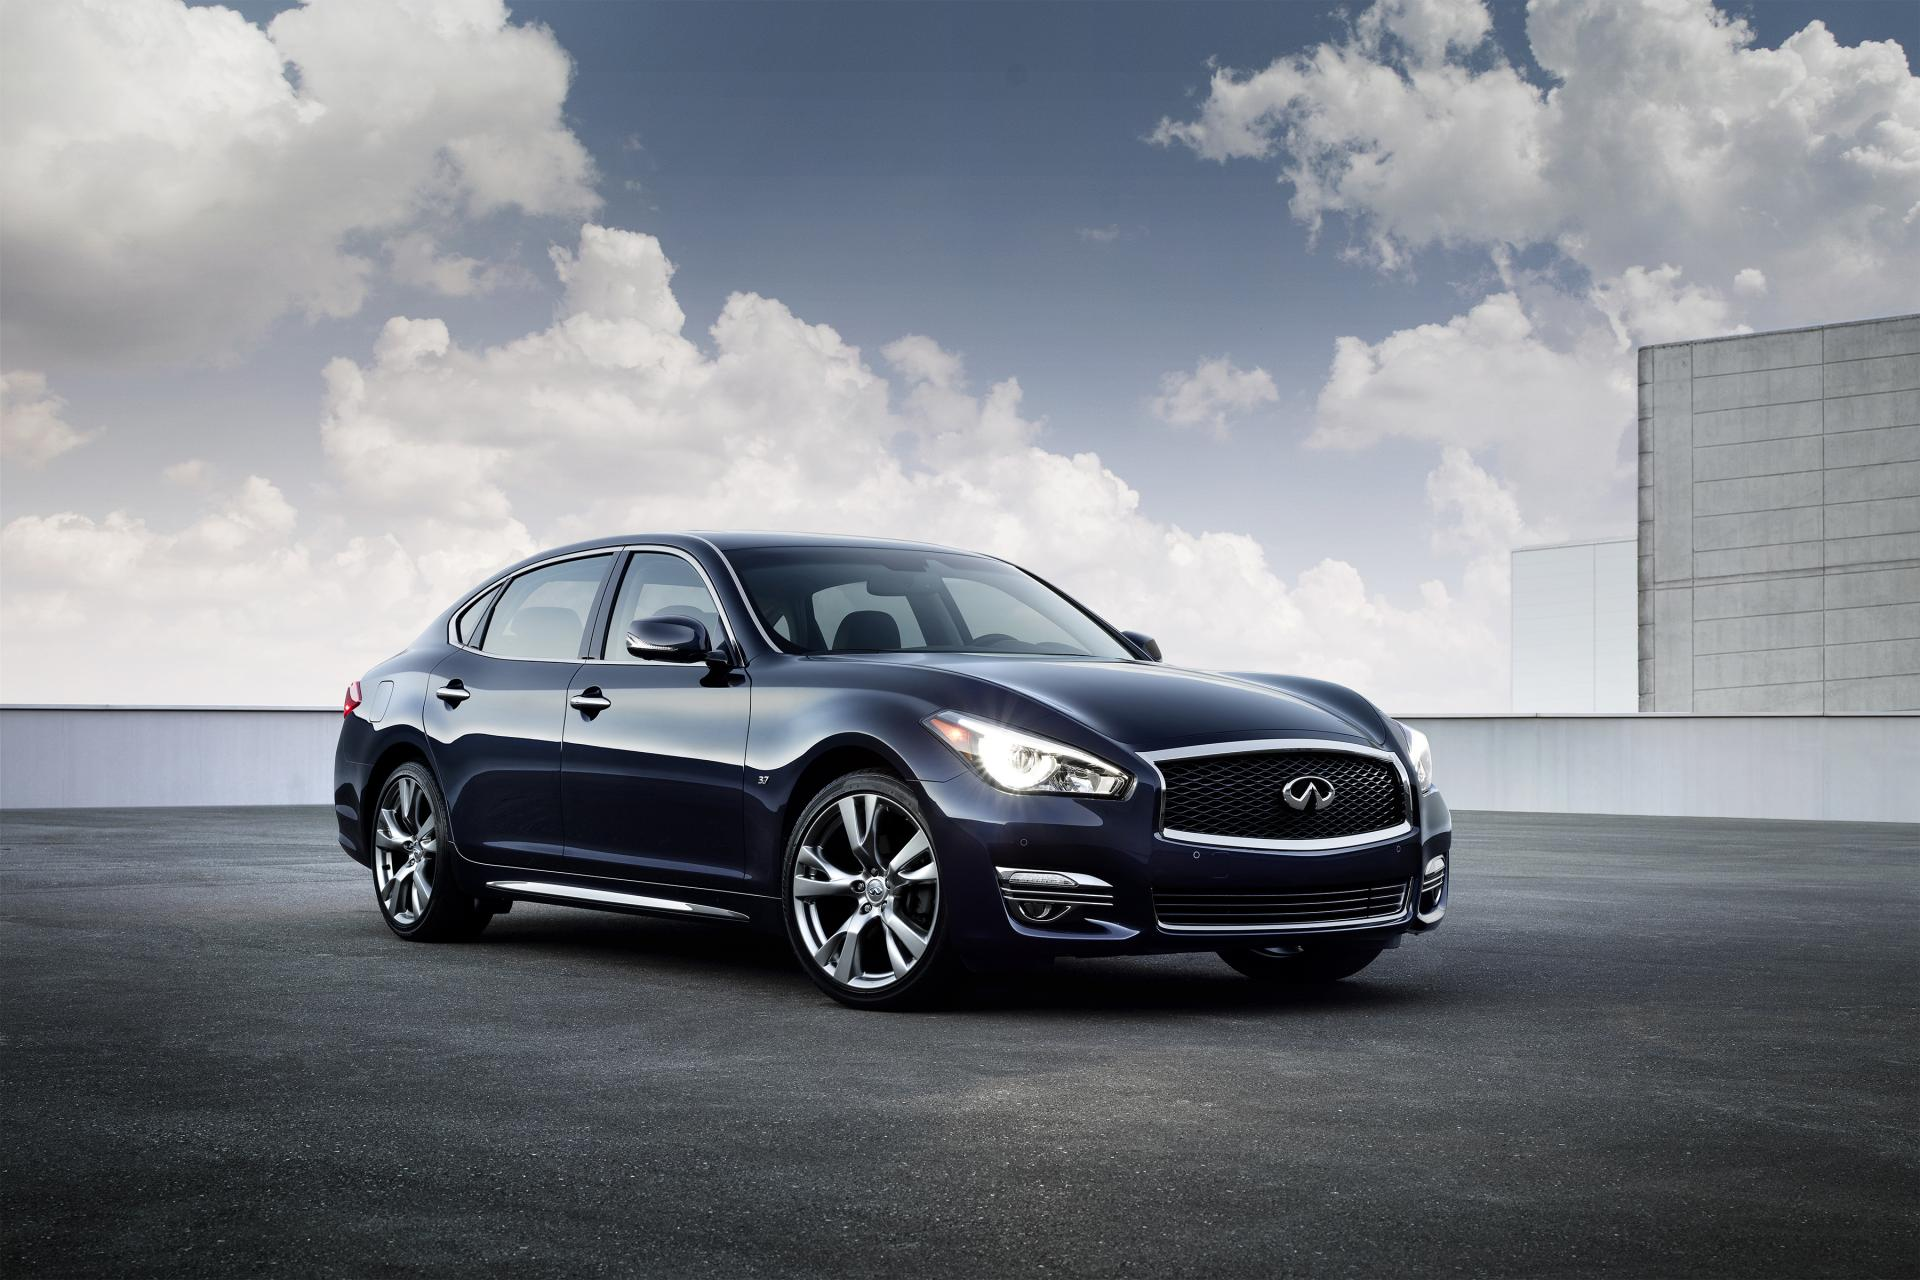 select high trim guelph new vehicles in sale awd for luxury img infiniti automatic